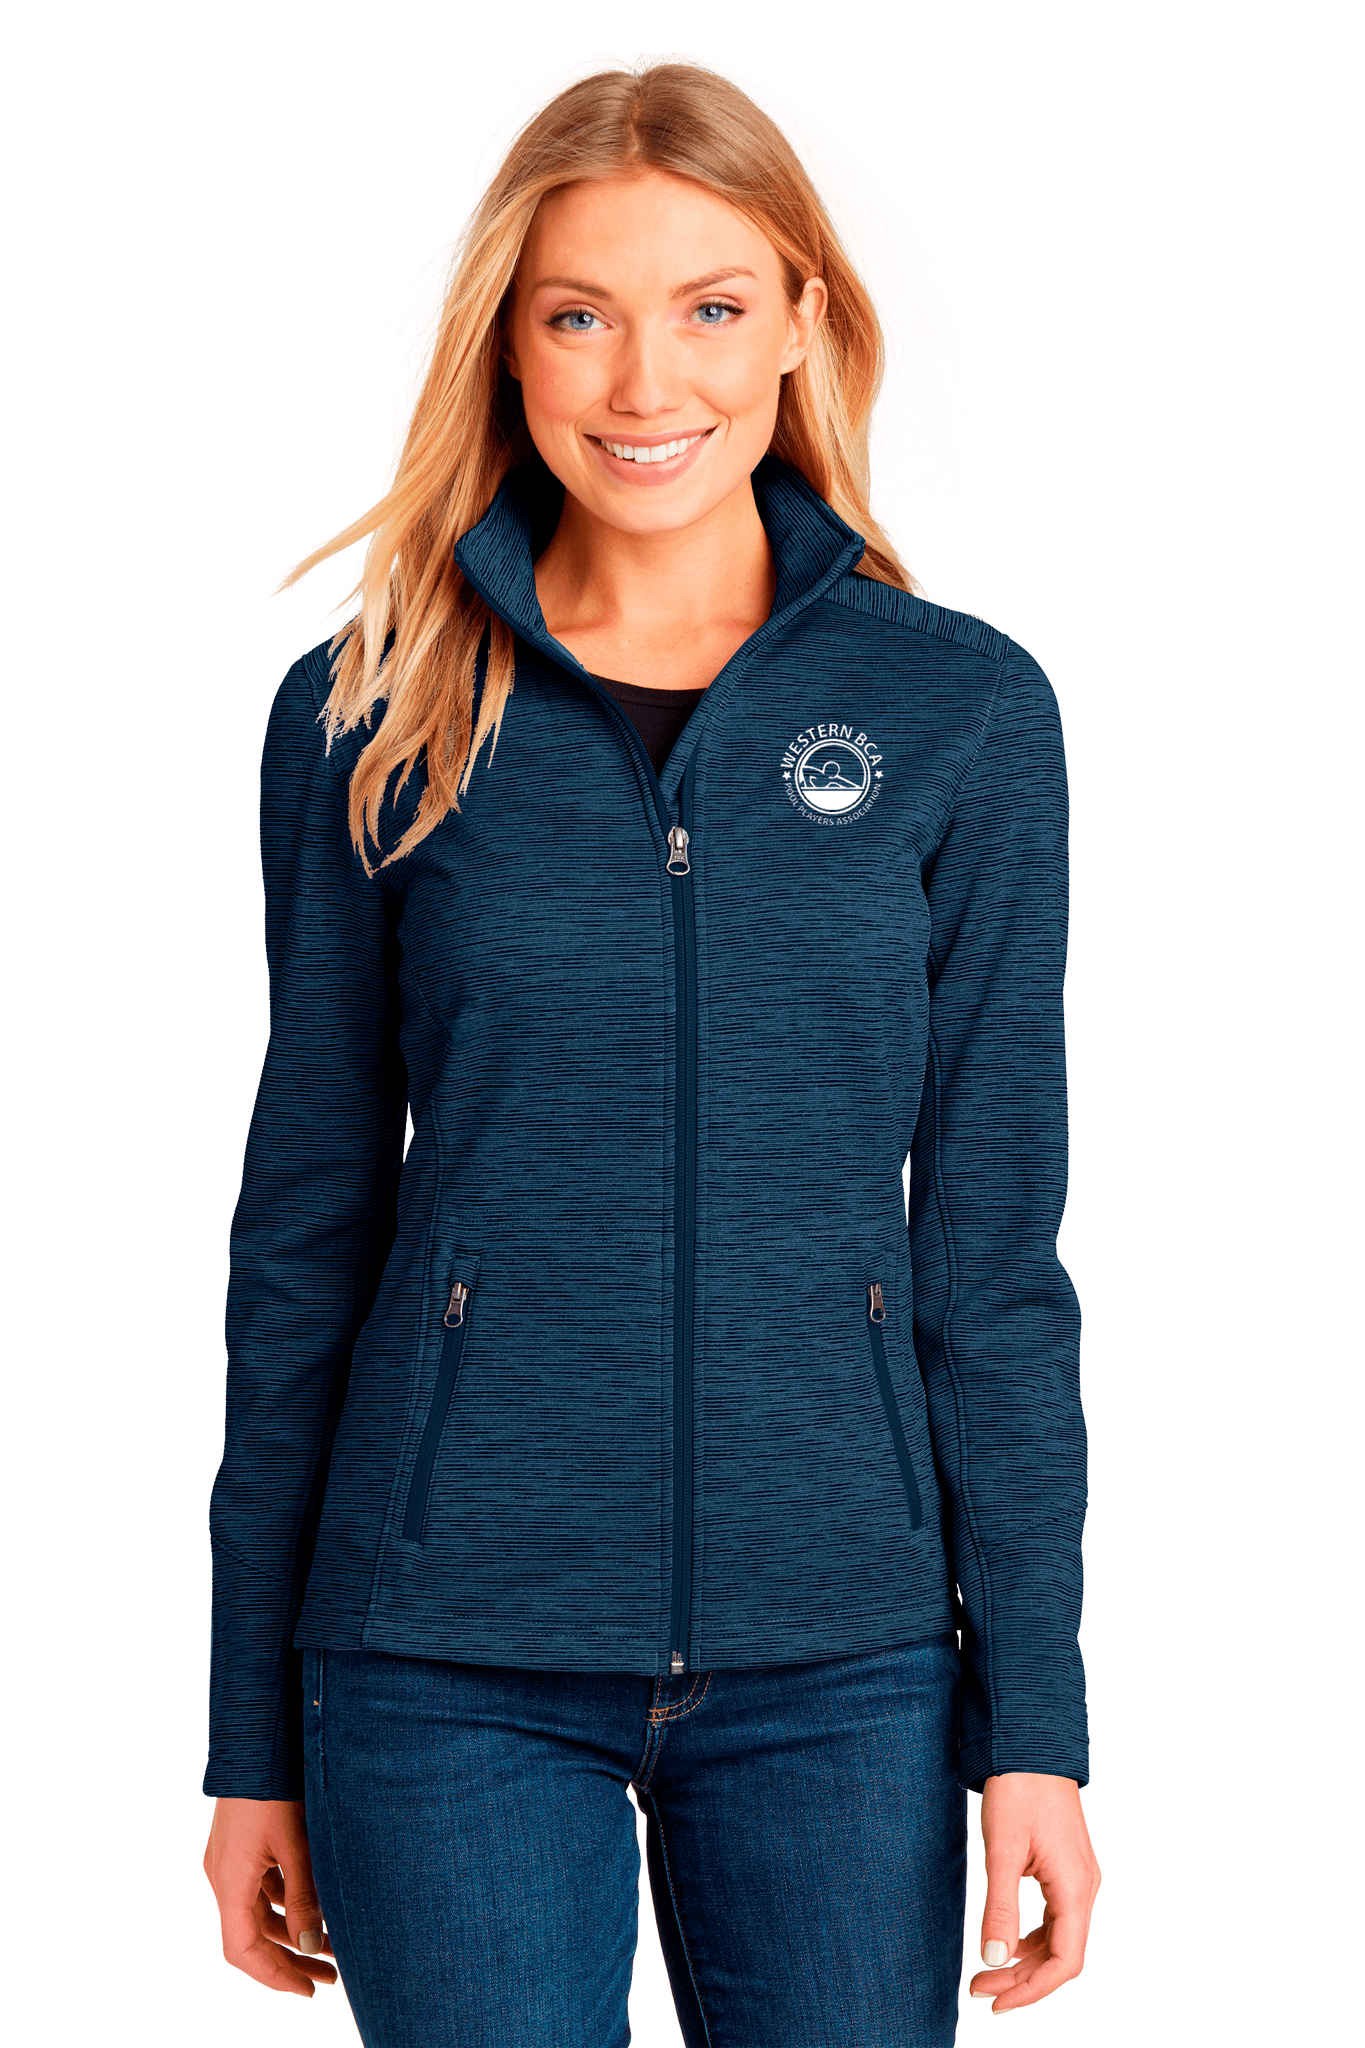 WBCA Ladies Digi Stripe Fleece Jacket